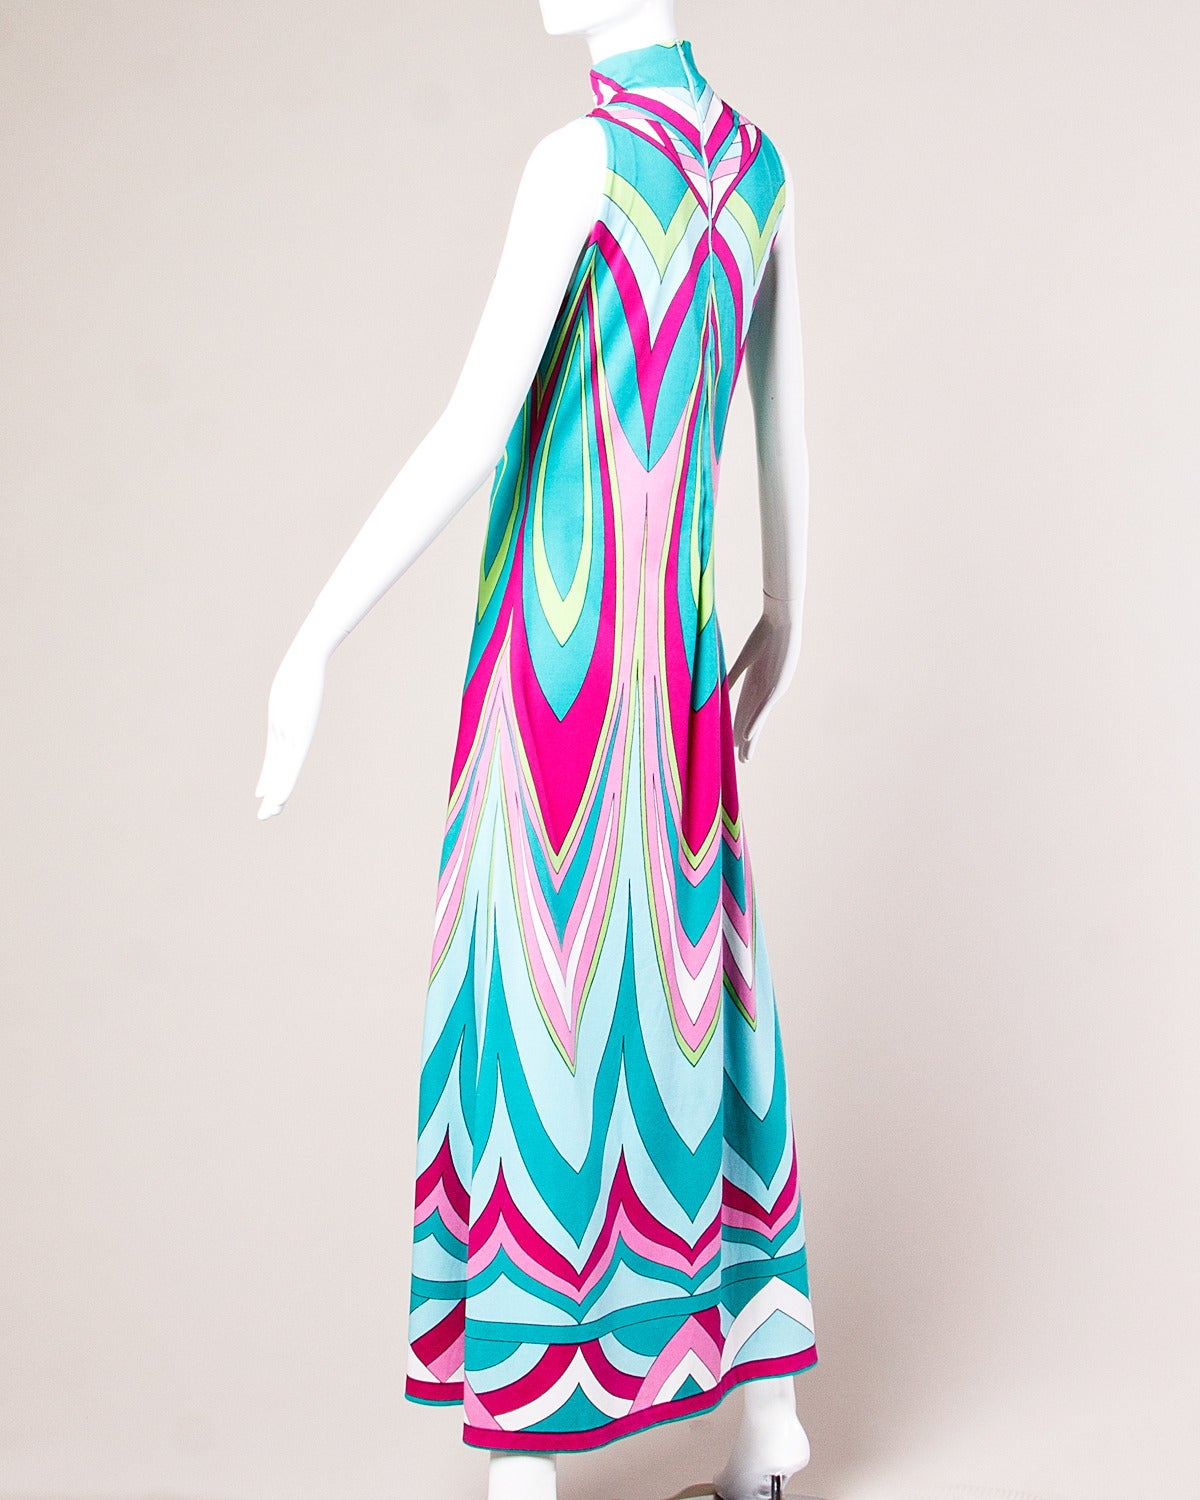 Vintage 1970s Colorful Op Art Jersey Knit Maxi Dress In Excellent Condition In Sparks, NV